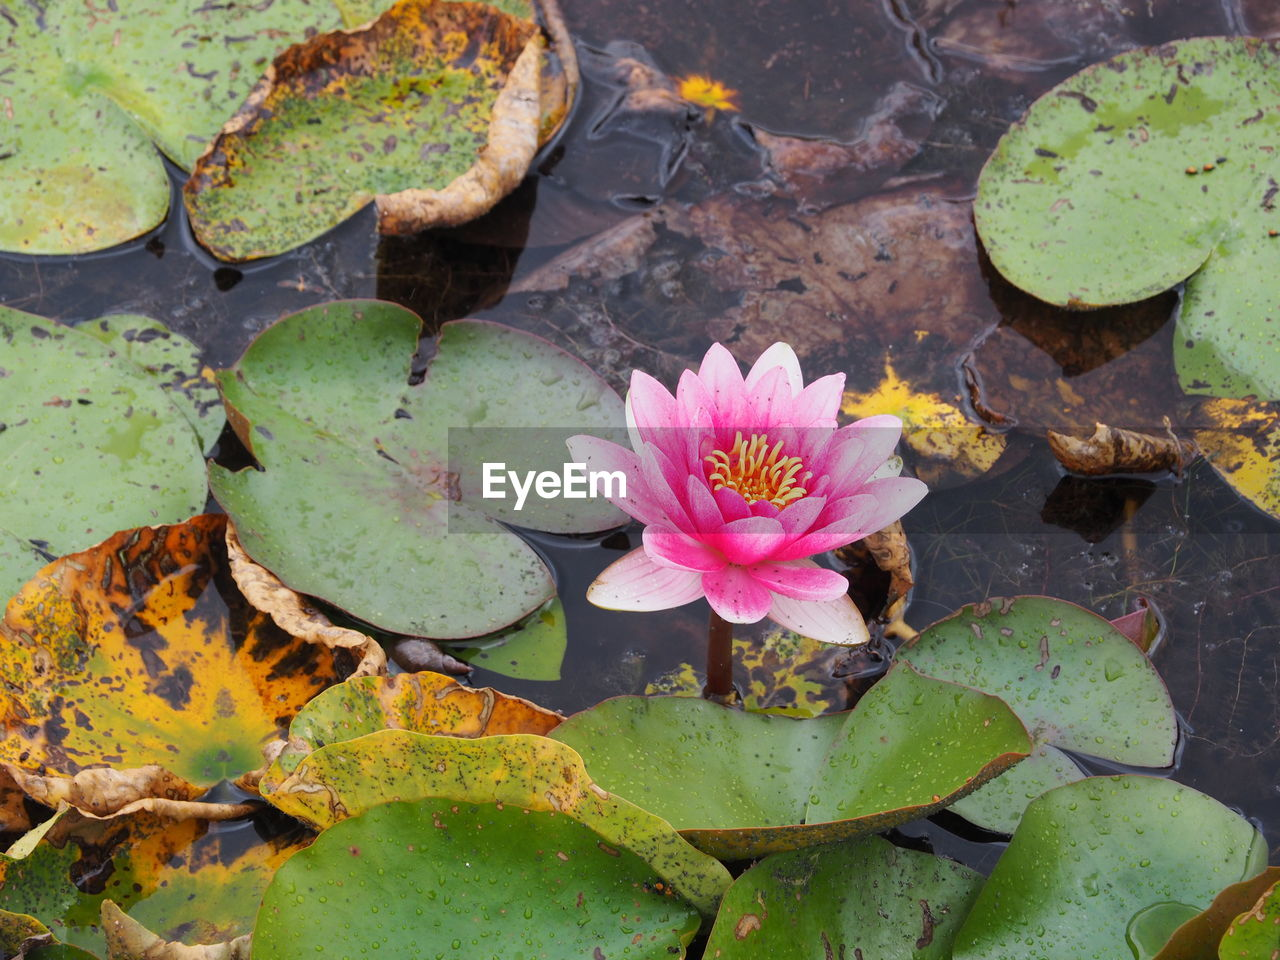 leaf, pond, nature, water lily, flower, beauty in nature, growth, lotus water lily, plant, floating on water, fragility, petal, water, lily pad, freshness, no people, day, outdoors, lotus, close-up, flower head